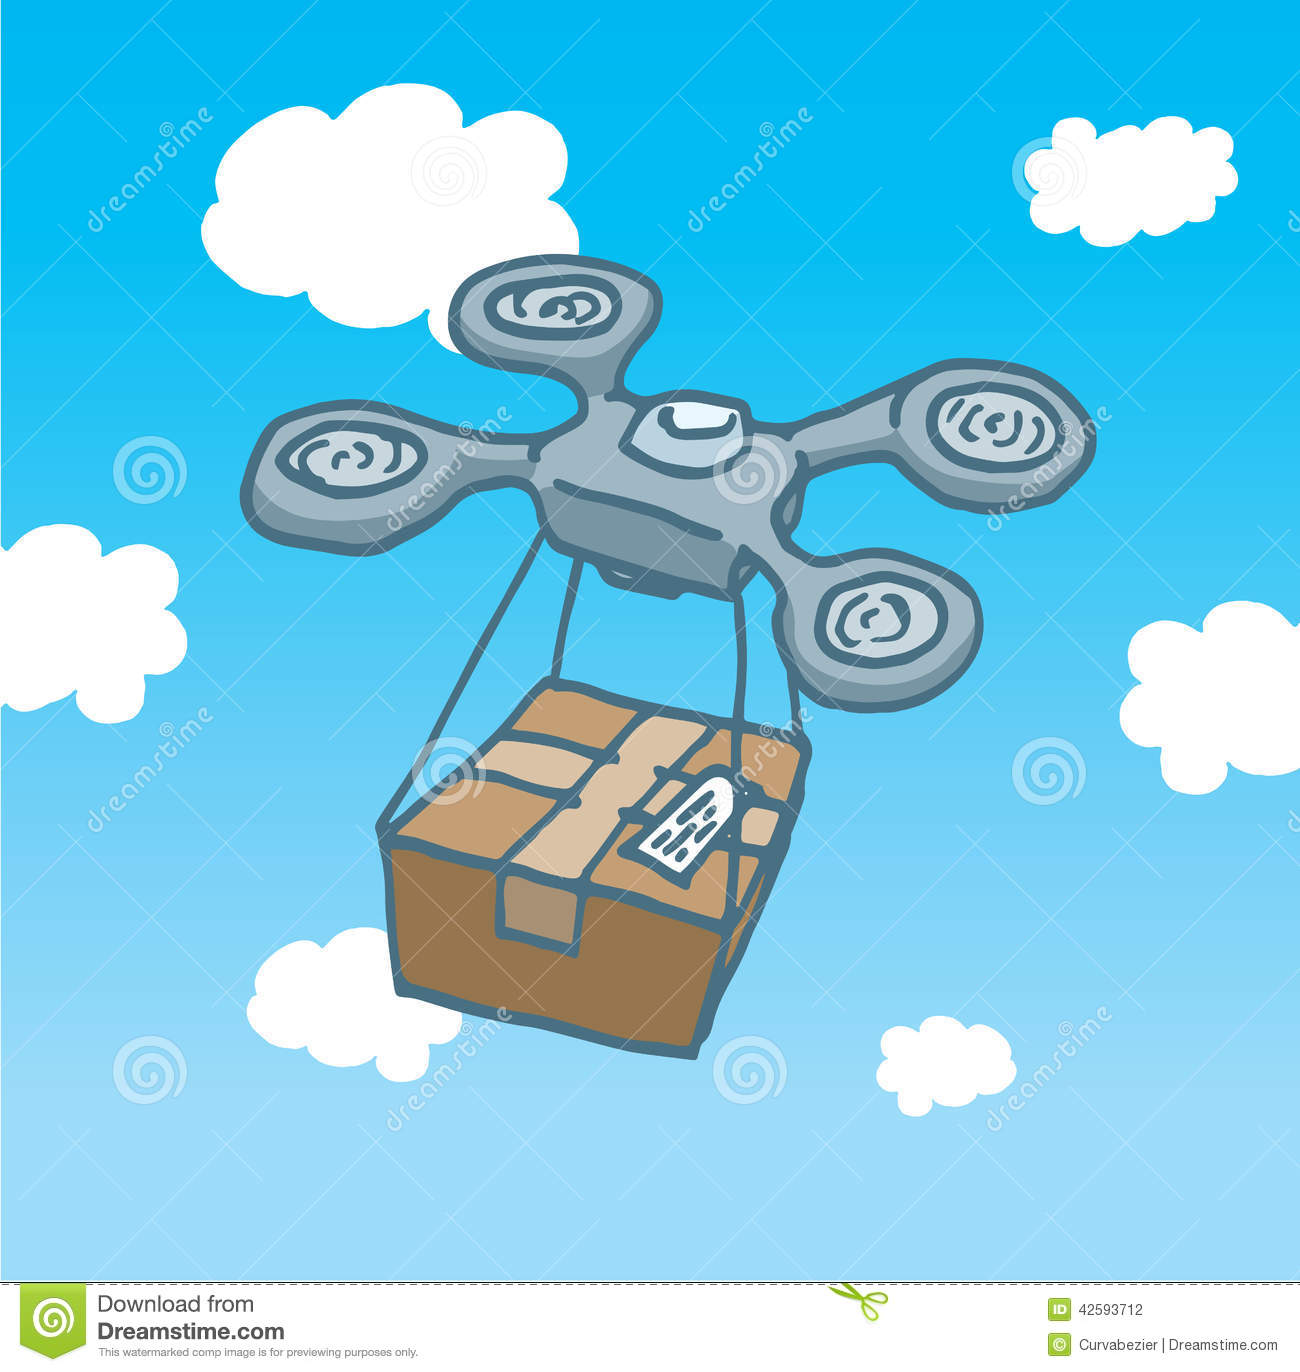 helicopter s prices with Stock Illustration Drone Copter Flight Delivering Box Cartoon Illustration Flying Post Office Image42593712 on Murrayayson moreover Palau Big Five Extension as well Stock Illustration Drone Copter Flight Delivering Box Cartoon Illustration Flying Post Office Image42593712 further Shelby Series 1 as well Royalty Free Stock Photography Green Dragon Image9071467.